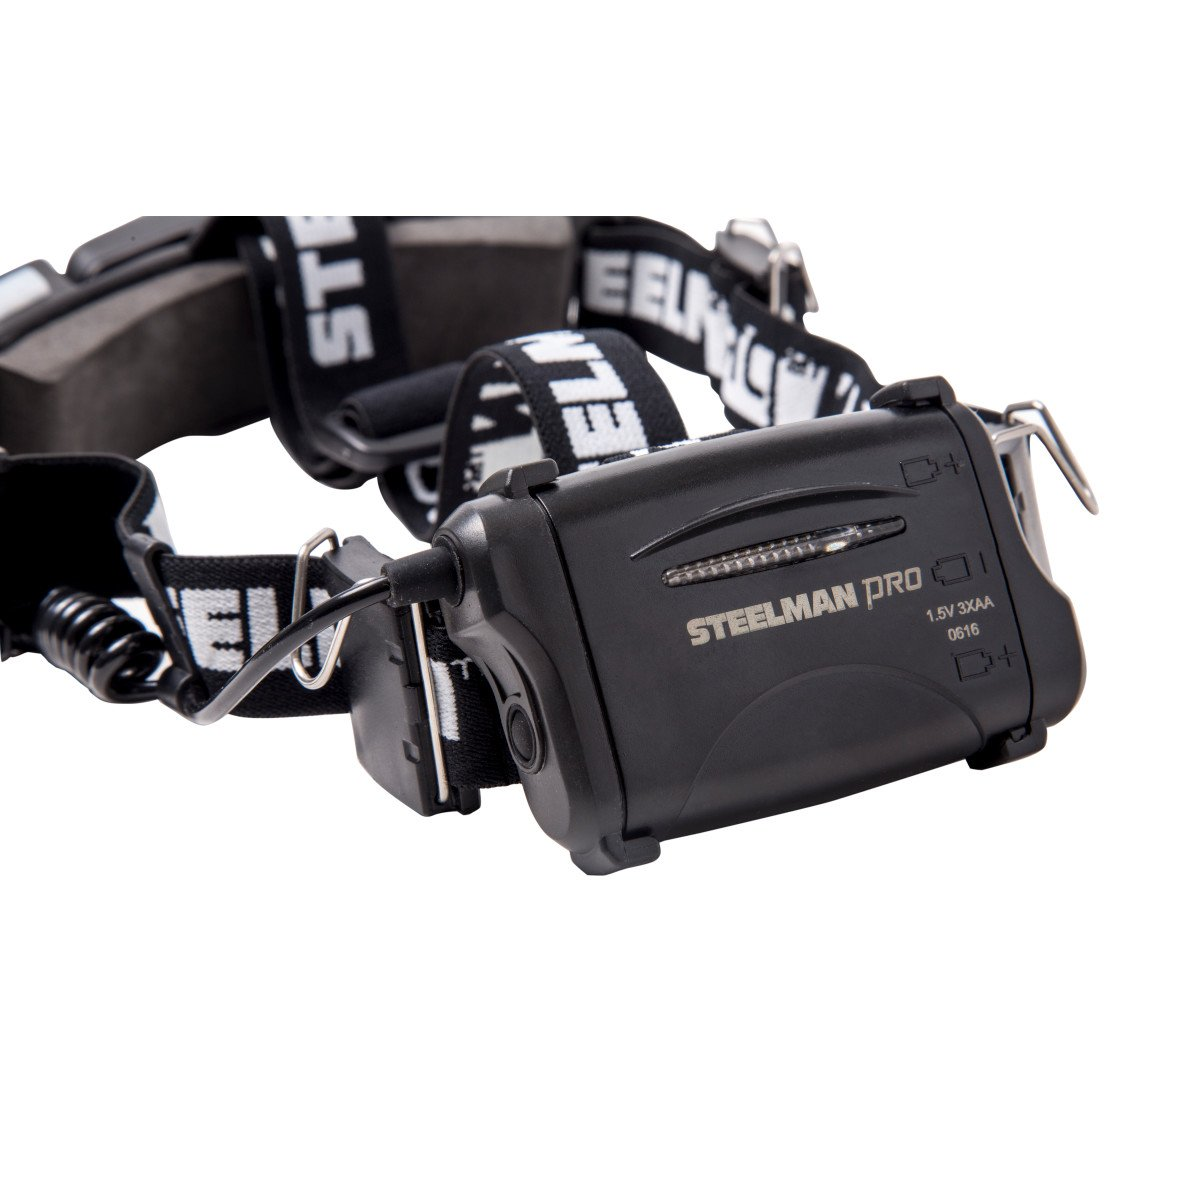 STEELMAN PRO 79052 Slim Profile LED Headlamp with Rear Flasher and 3 AA Batteries by Steelman Pro (Image #5)